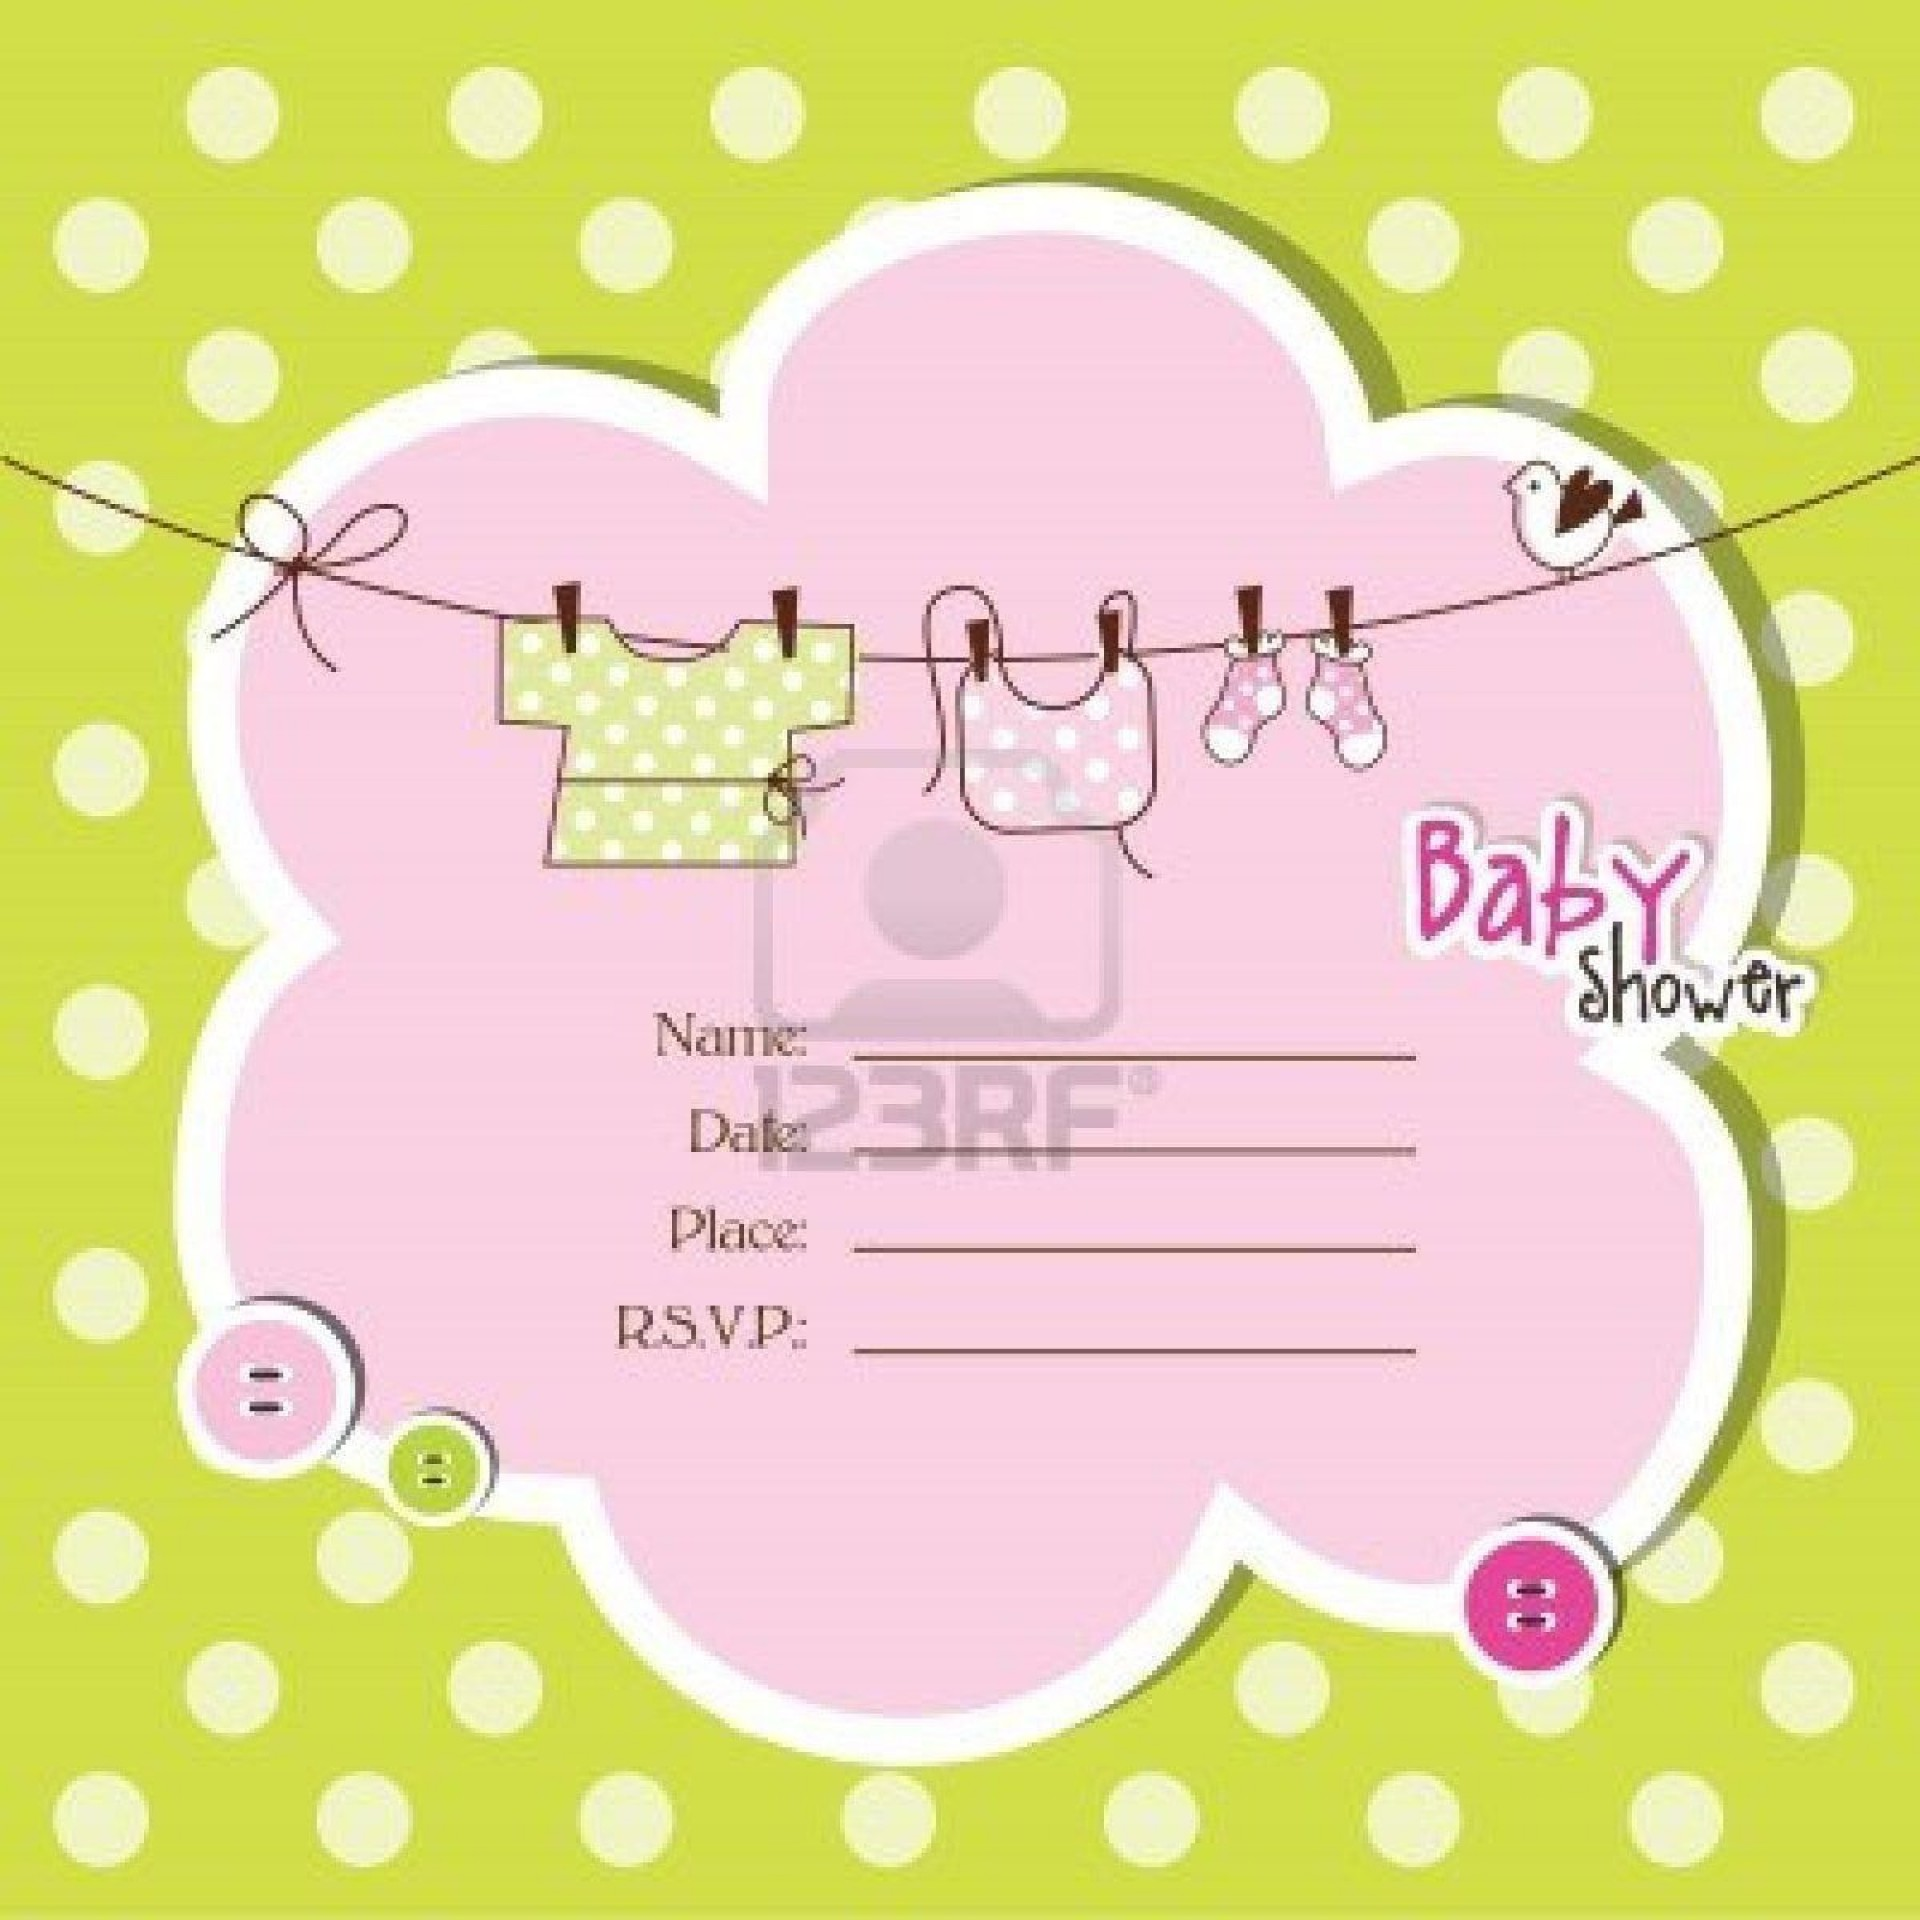 006 Formidable Free Editable Baby Shower Invitation Template For Word Highest Quality  Microsoft1920